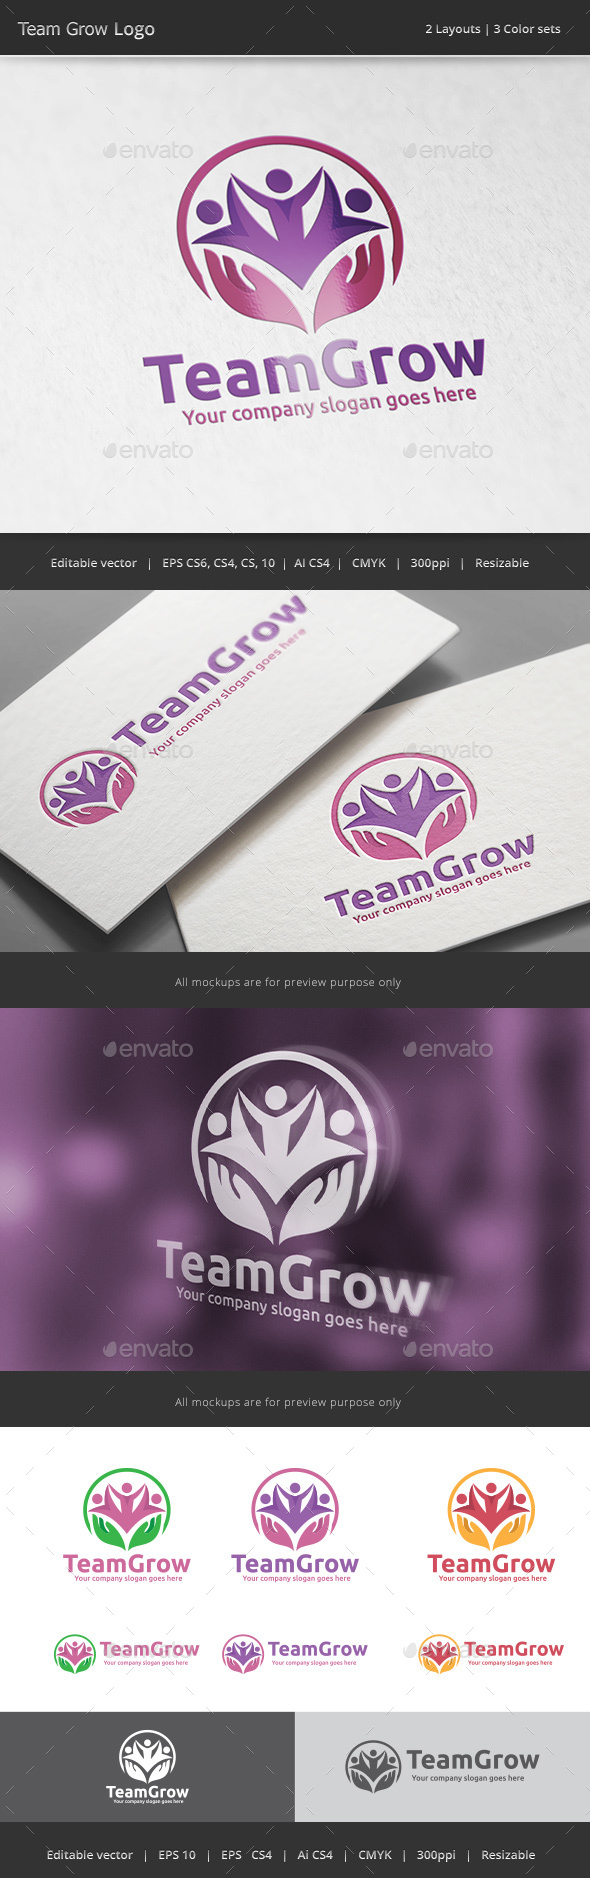 Team Grow People Logo - Vector Abstract